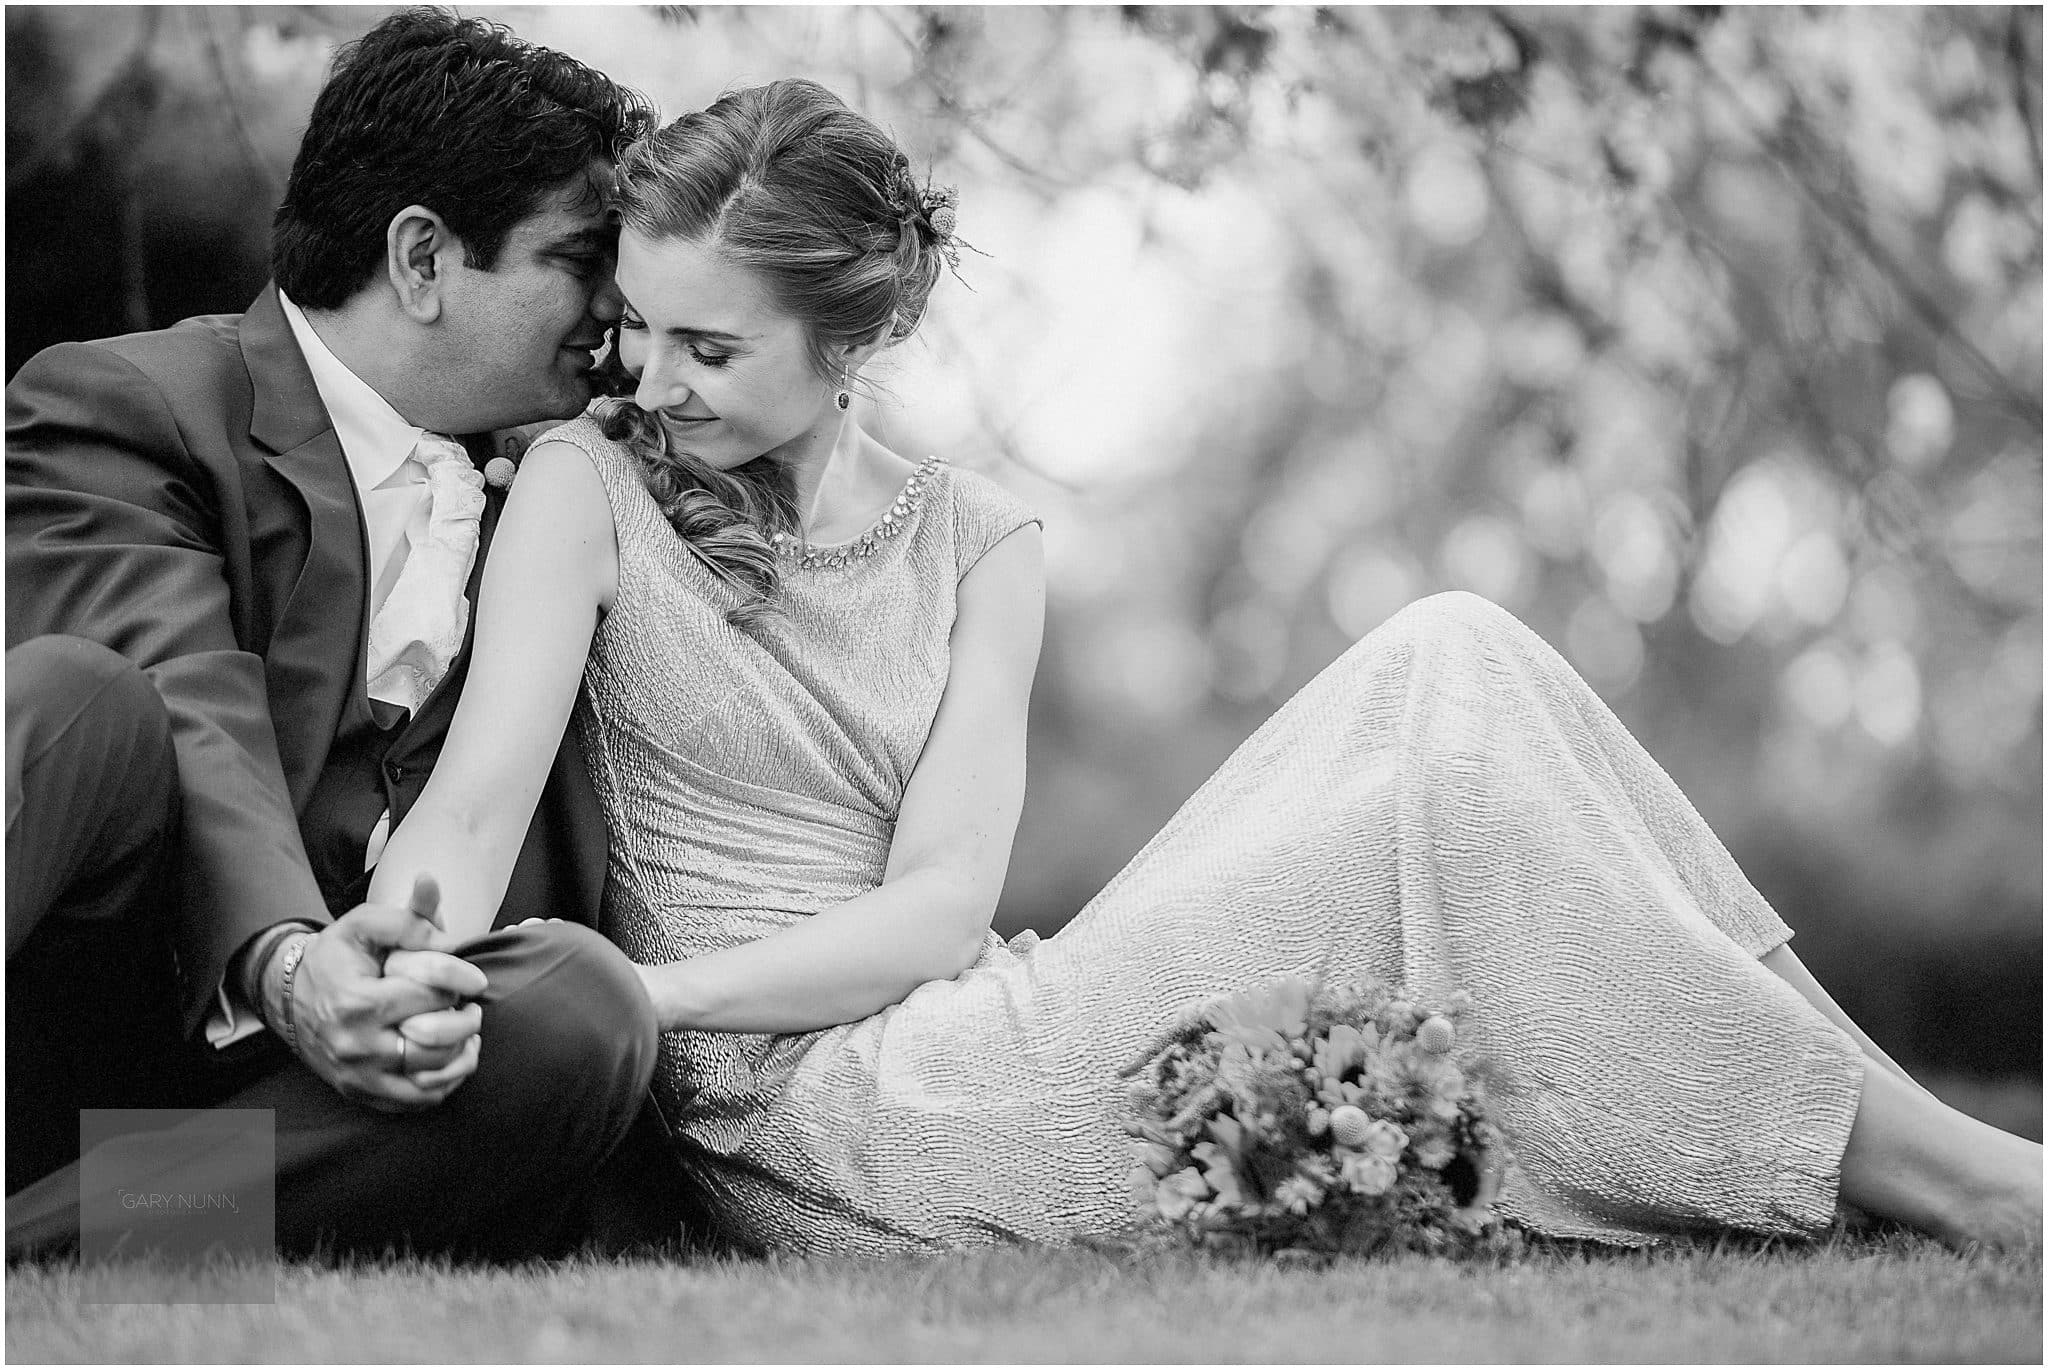 Cheap Wedding Photography Tips: Why Hire A Professional Wedding Photographer?